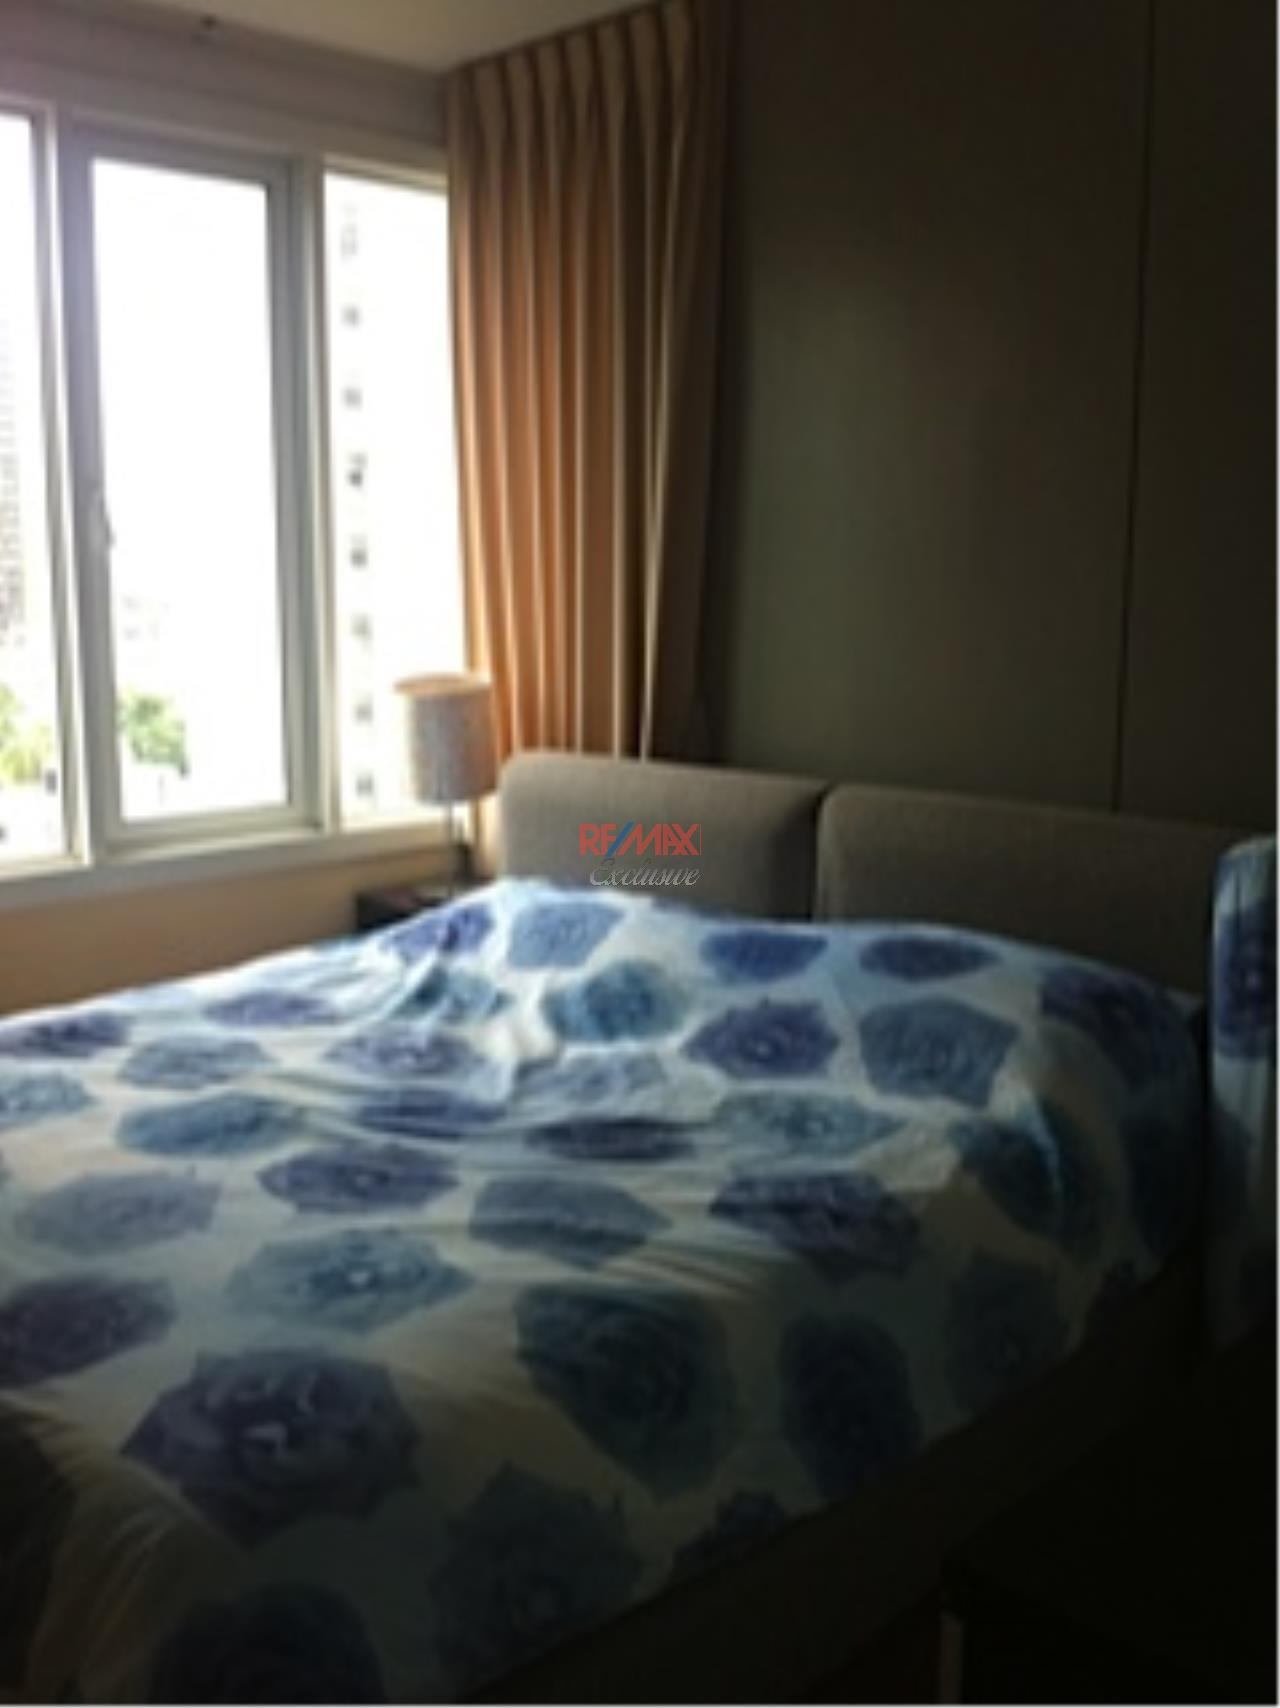 RE/MAX Exclusive Agency's BAAN SIRI 24, Sukhumvit 24, Fully-Furnished, 1 Bedroom, 60 Sq.M. High Floor, City View! 6